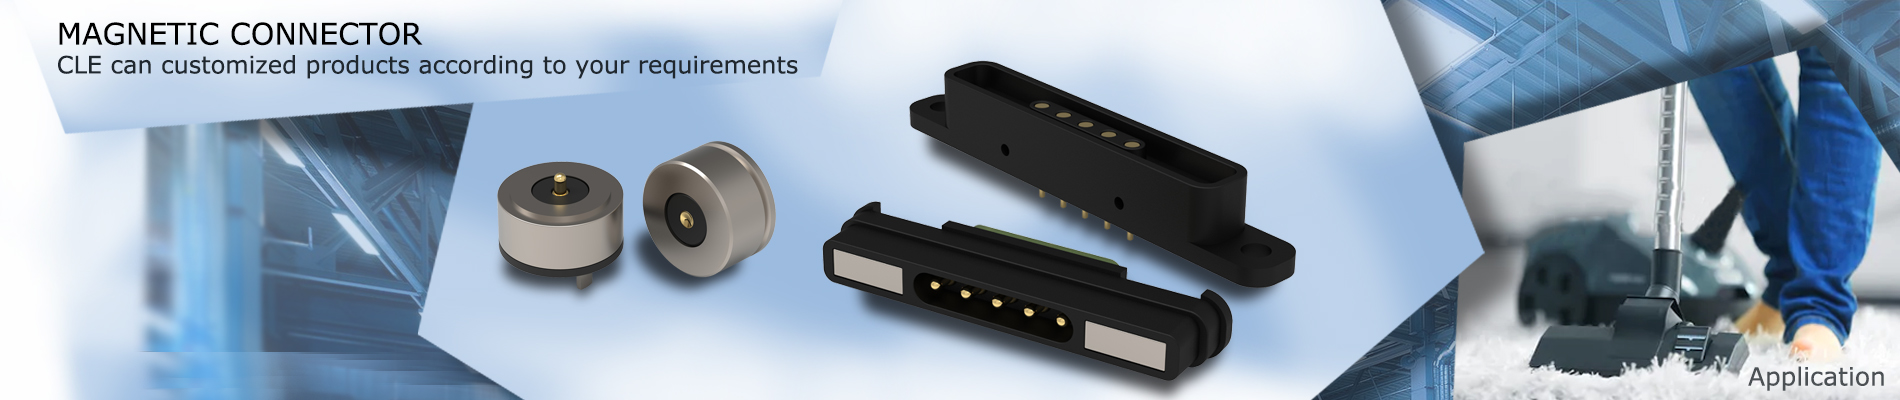 magnetic connector for smart home